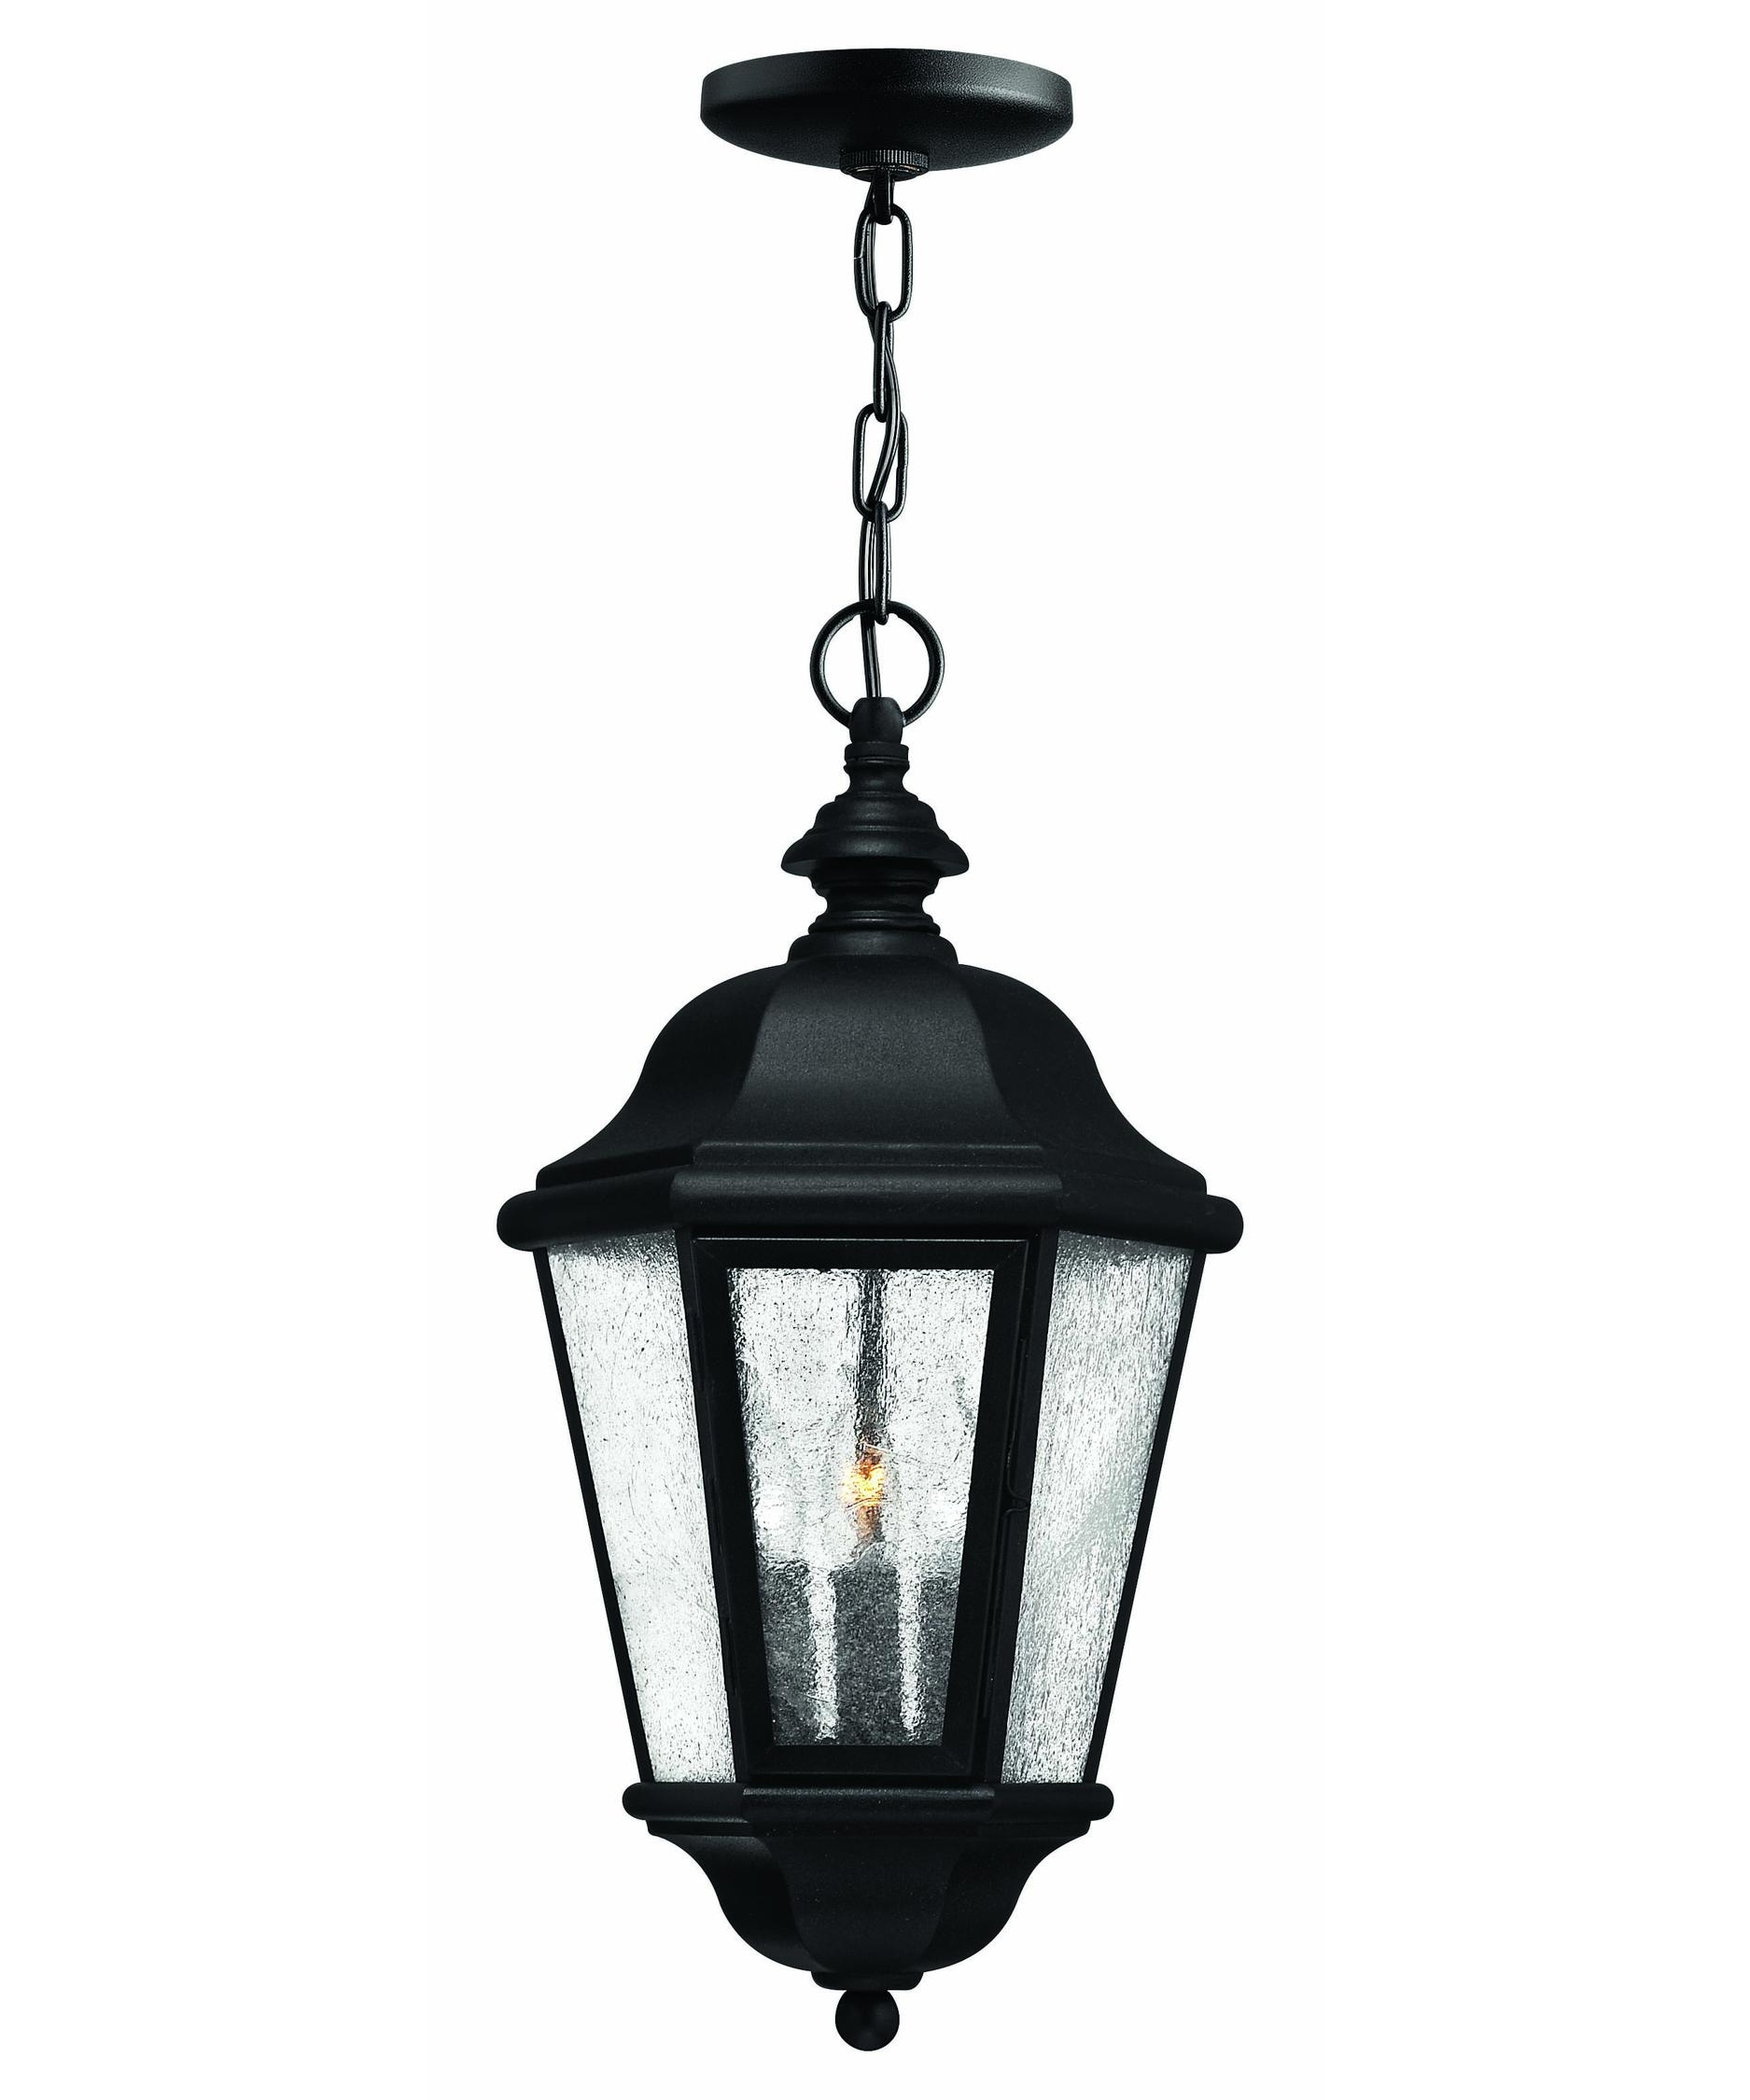 Popular Outdoor Hanging Lights At Amazon With Regard To Hinkley Lighting 1672 Edgewater 10 Inch Wide 3 Light Outdoor Hanging (View 4 of 20)